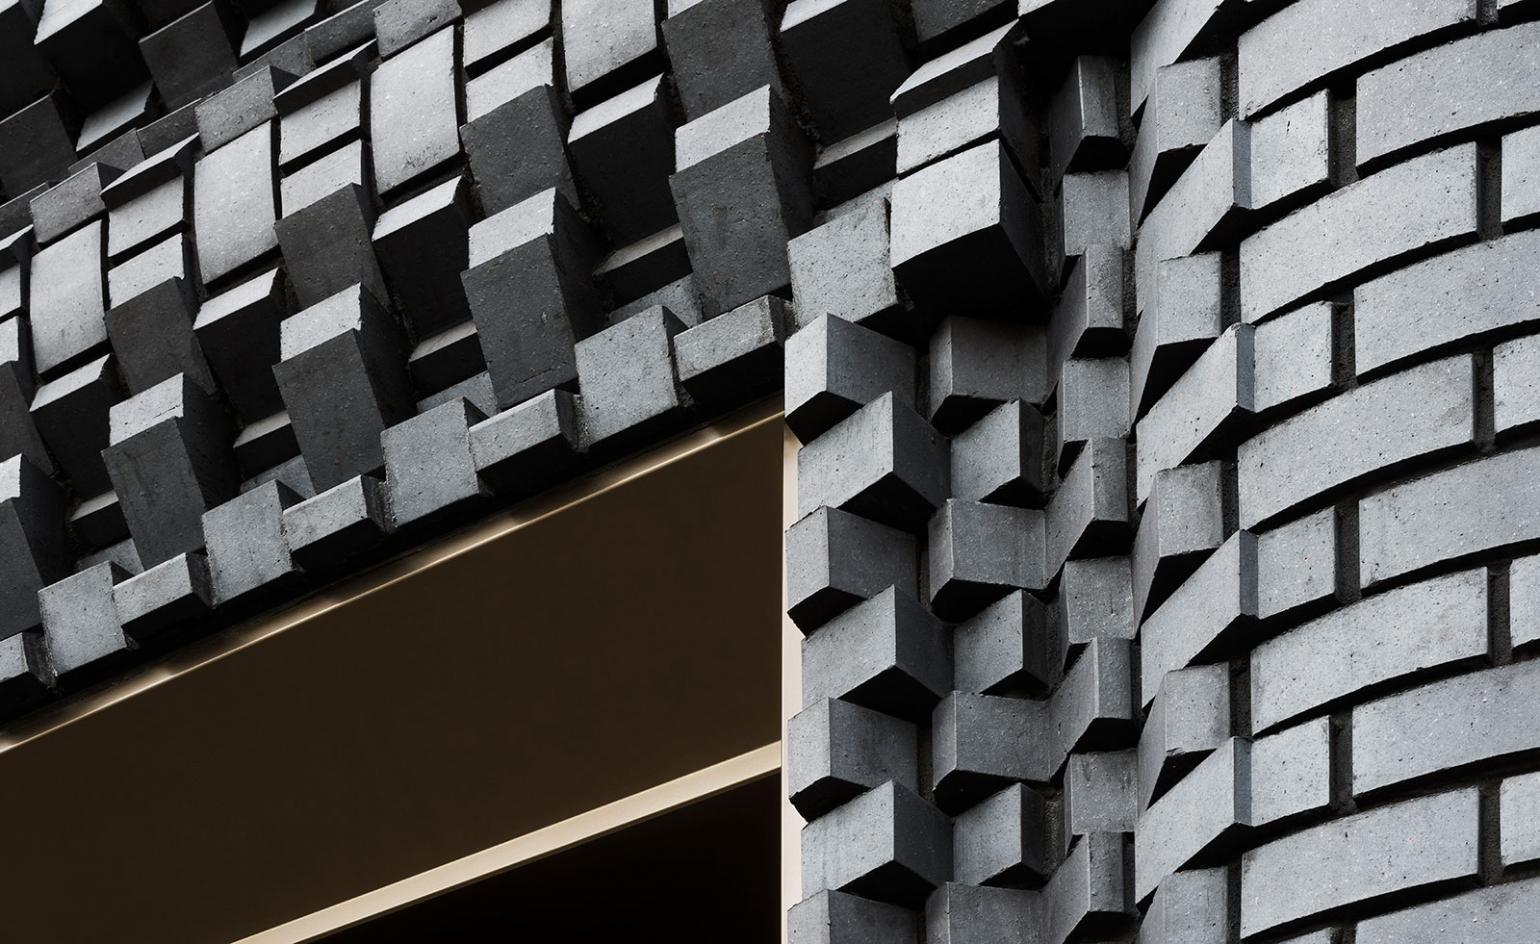 Alternative façades fronting sustainable and urban change